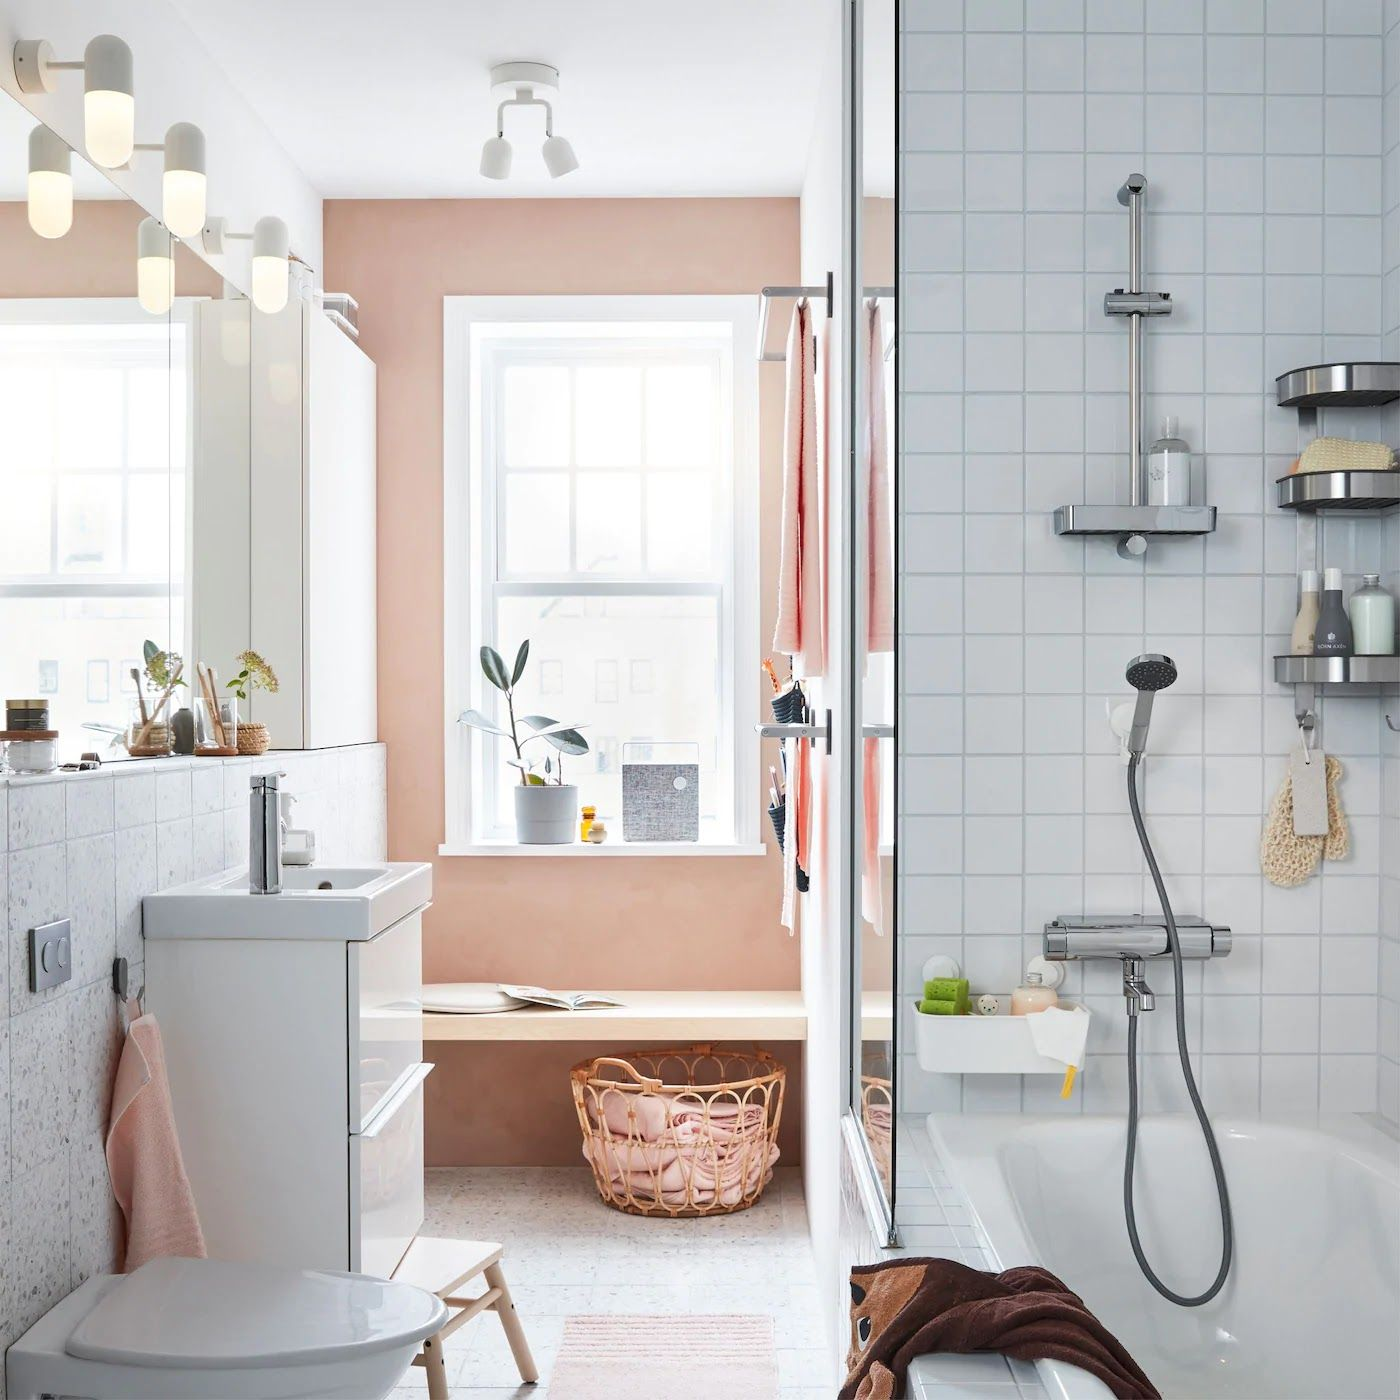 Bathroom lighting ideas: 19 ways to banish gloom from your room